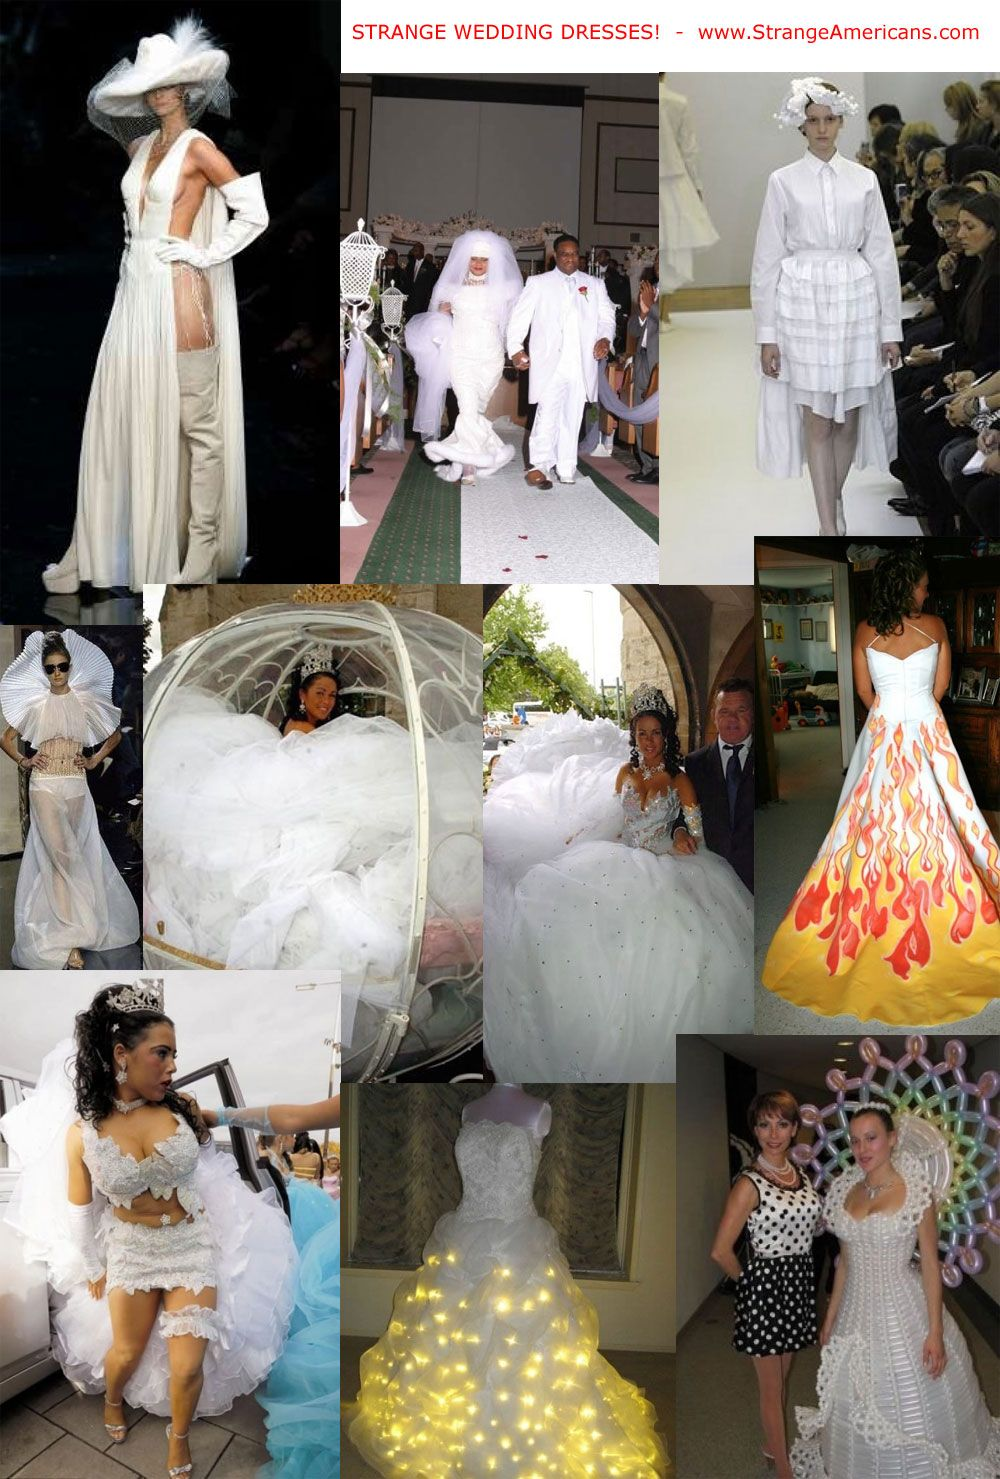 Strange And Crazy Wedding Dresses Wild Weird Wedding Dress Cheap Wedding Dress Wedding Dresses